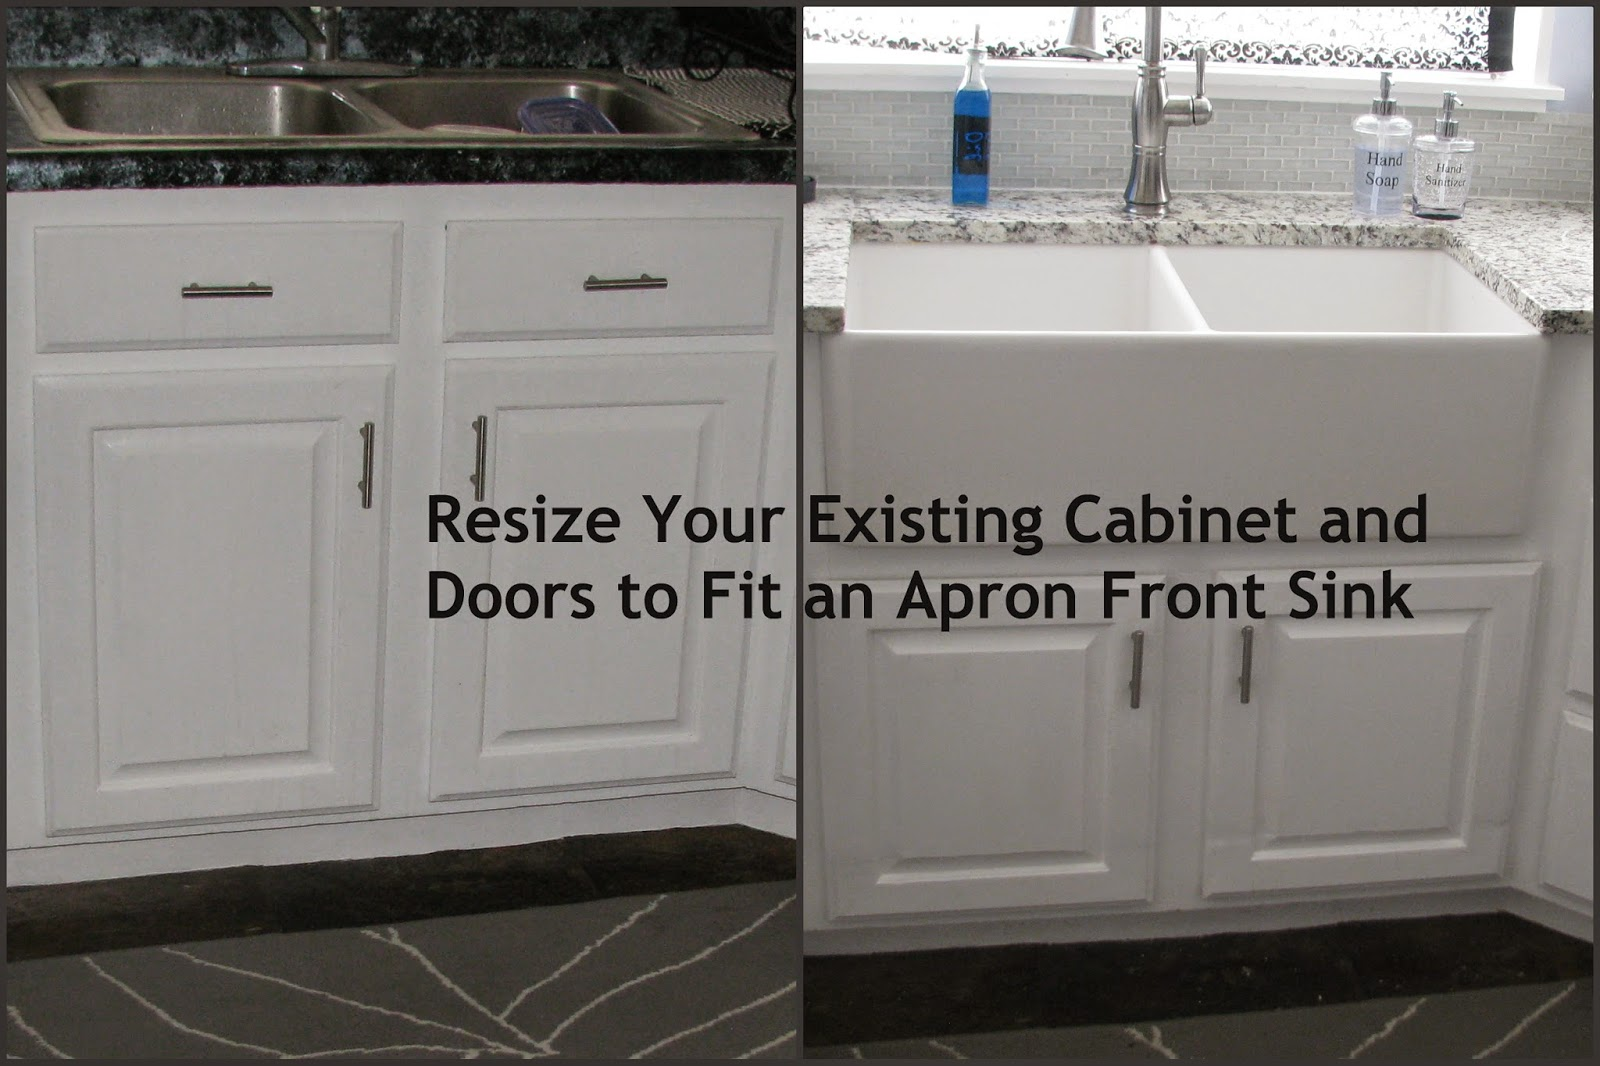 As Part Of Our Kitchen Makeover, We Had To Take Out Our Old Sink And Adjust  The Cabinet To Fit Our Undermount Apronfront Sink Before They Could  Template The ...